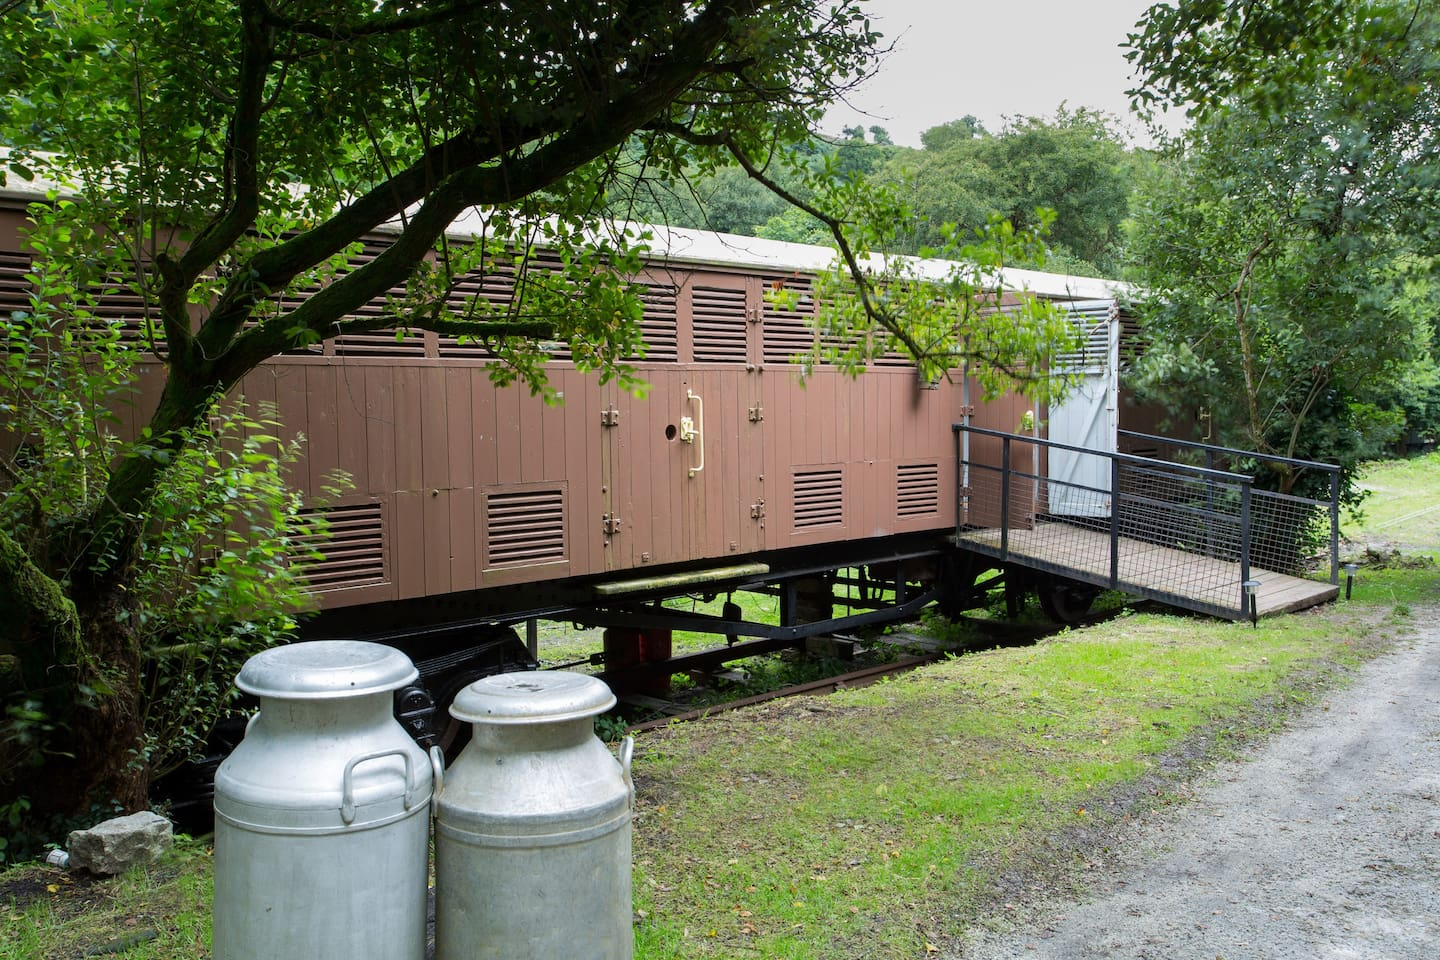 The Siphon railway carriage was used to carry milk churns (just like these!) from the West Country to the Cities of the UK. The carriage now offers an exciting glamping experience